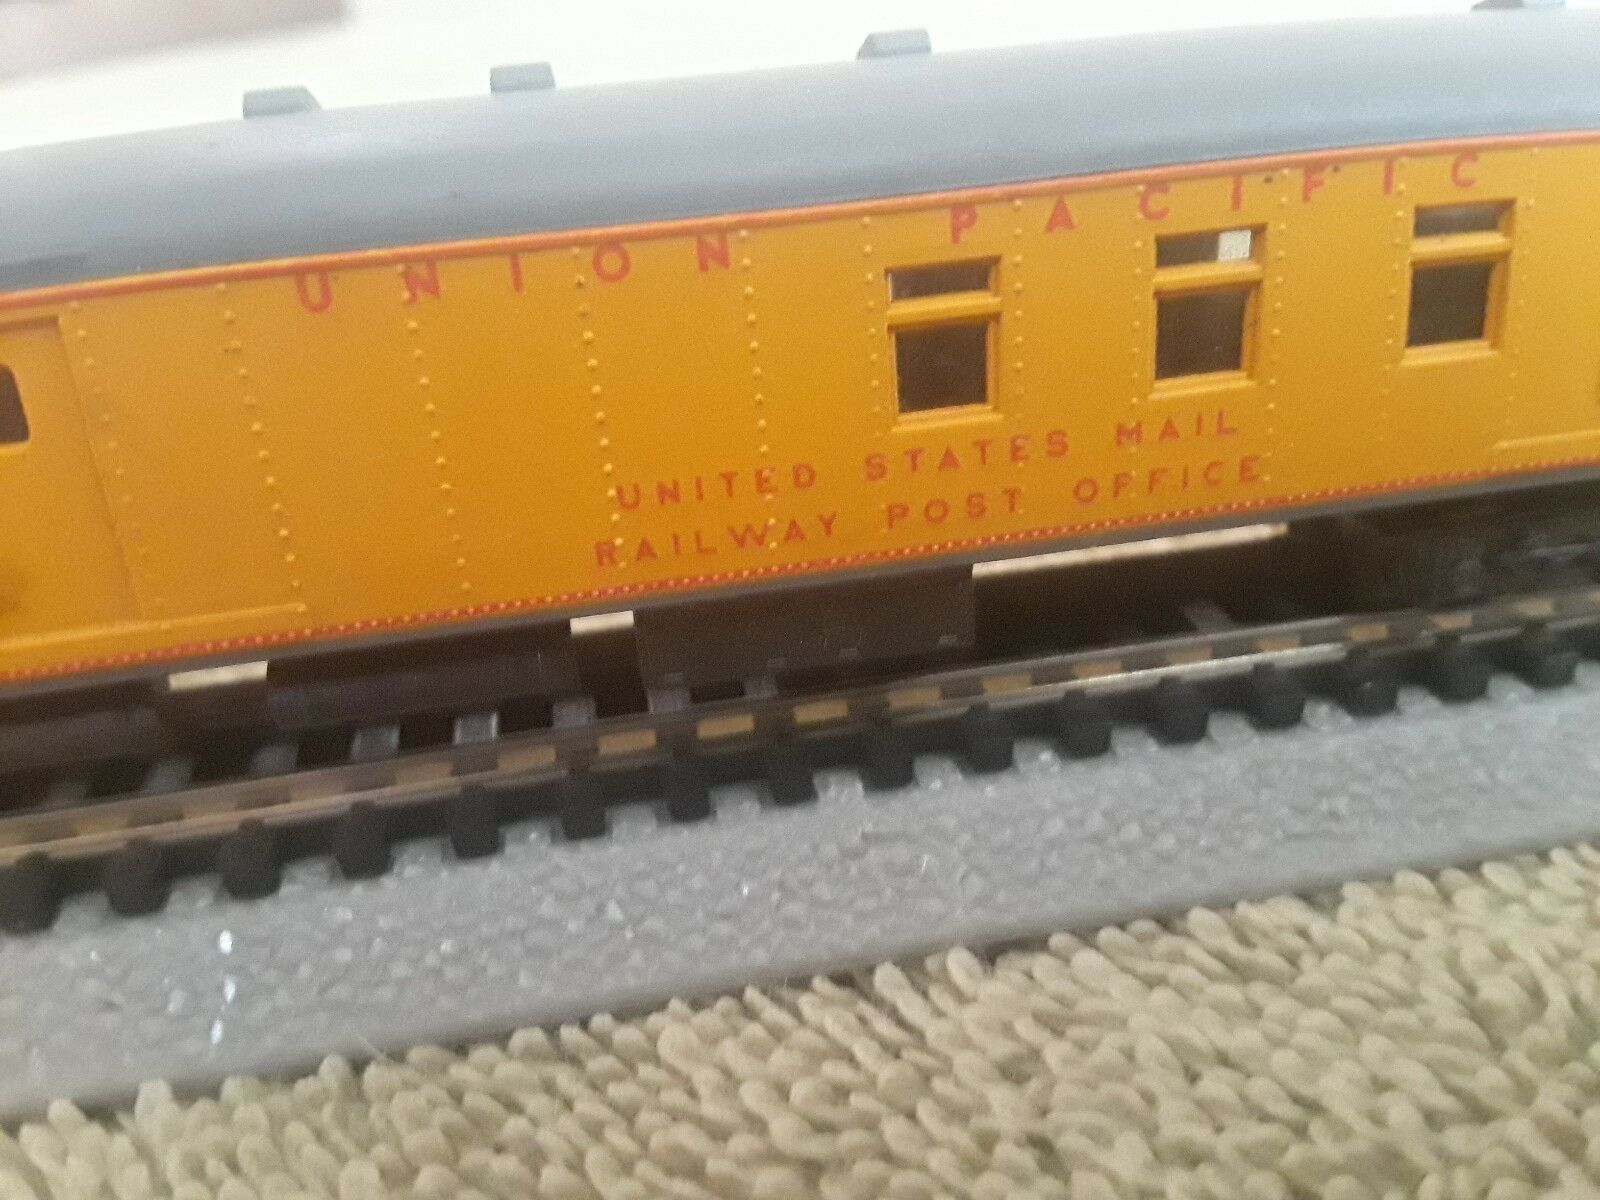 N scale union Pacific railway post office car